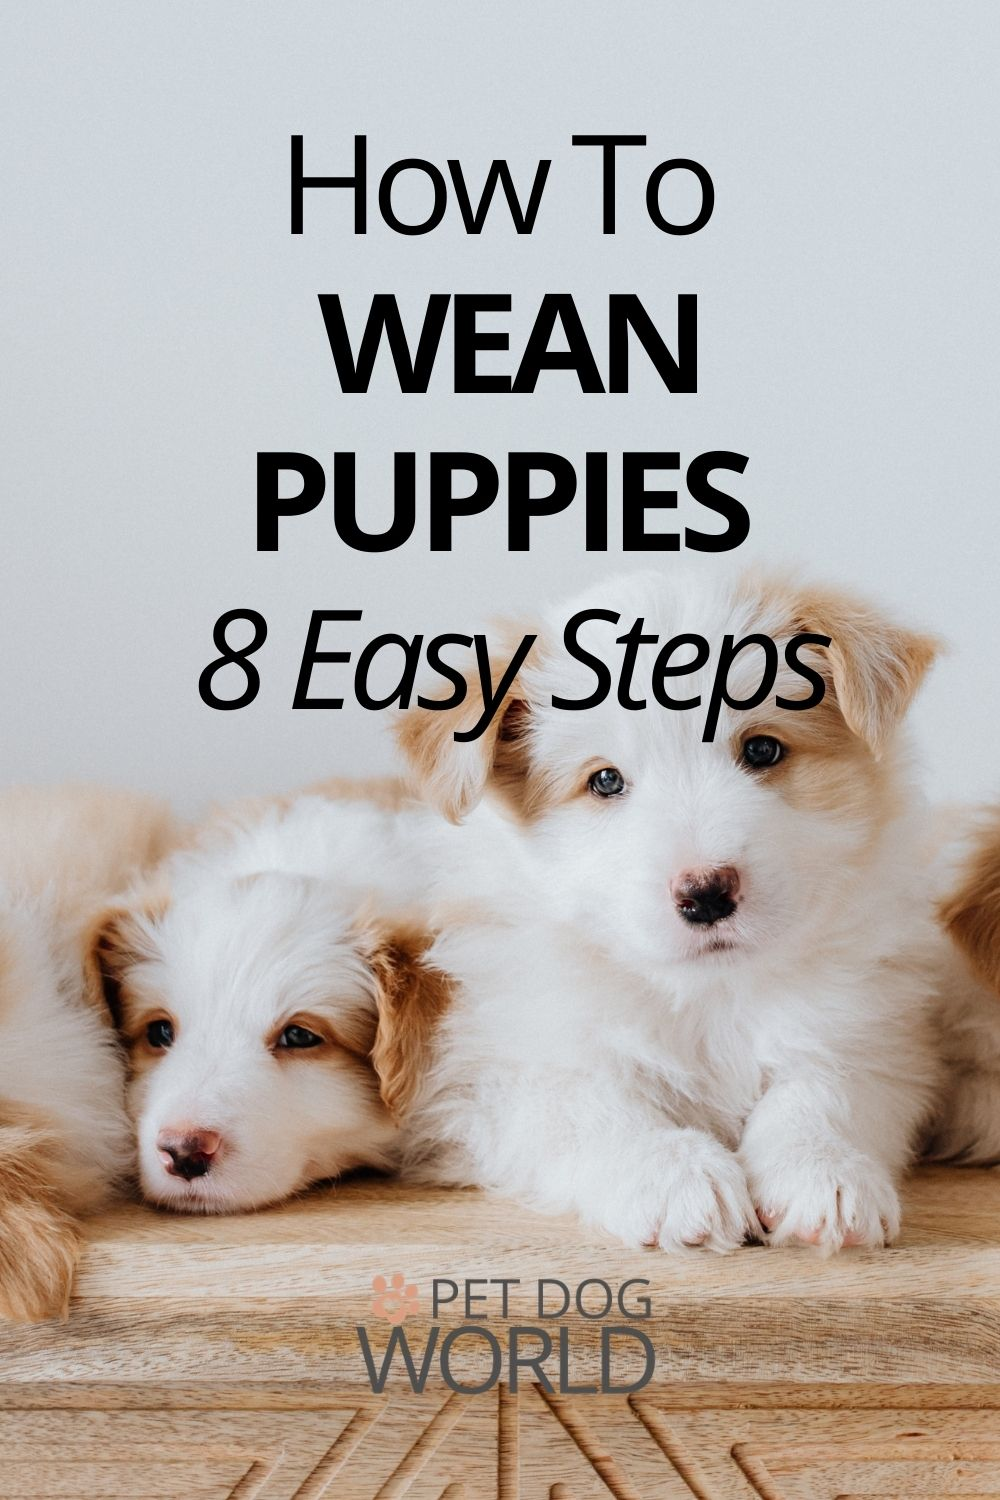 How to wean puppies in 8 easy steps